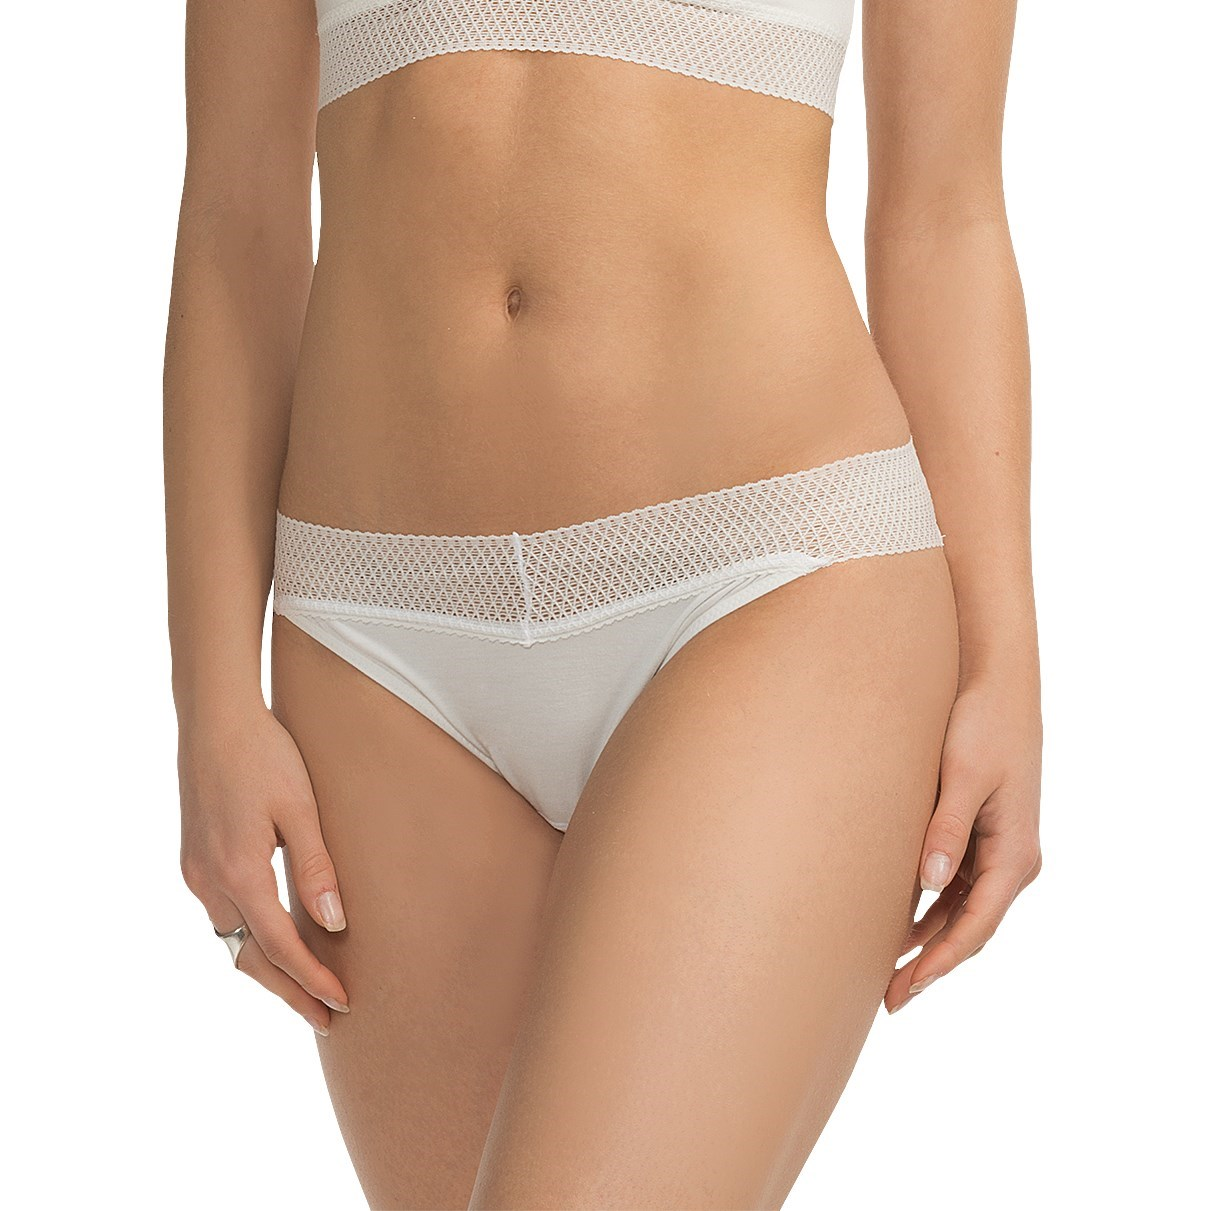 Shop Hanes Stretch Cotton Low Rise Brief Panties. Stylish Low Rise Panties with a ComfortSoft Waistband. Get Comfort and Quality when you buy Hanes. Message Dialog This area is to show errors (if any) caused due to user input/ or system errors. Close/5().